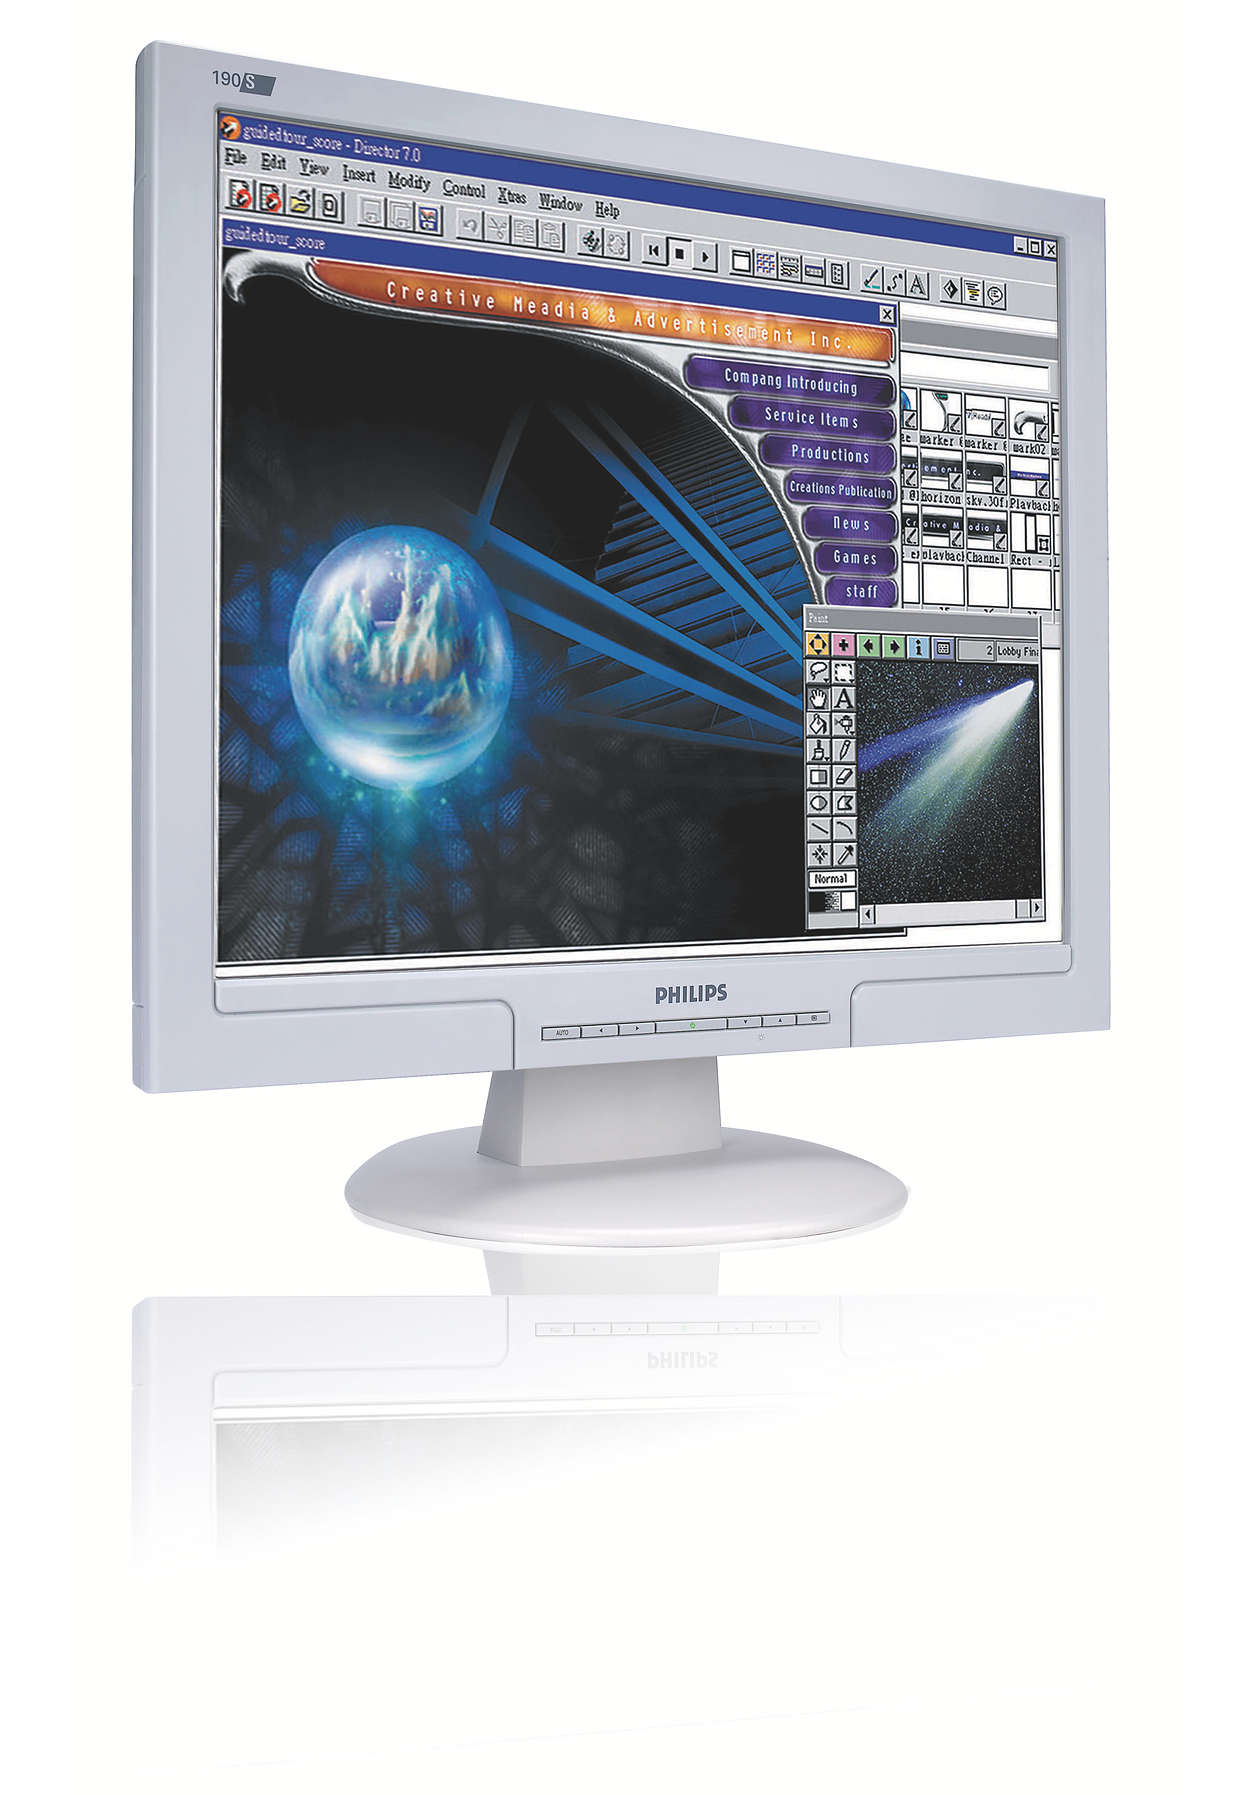 Big screen performance within your budget